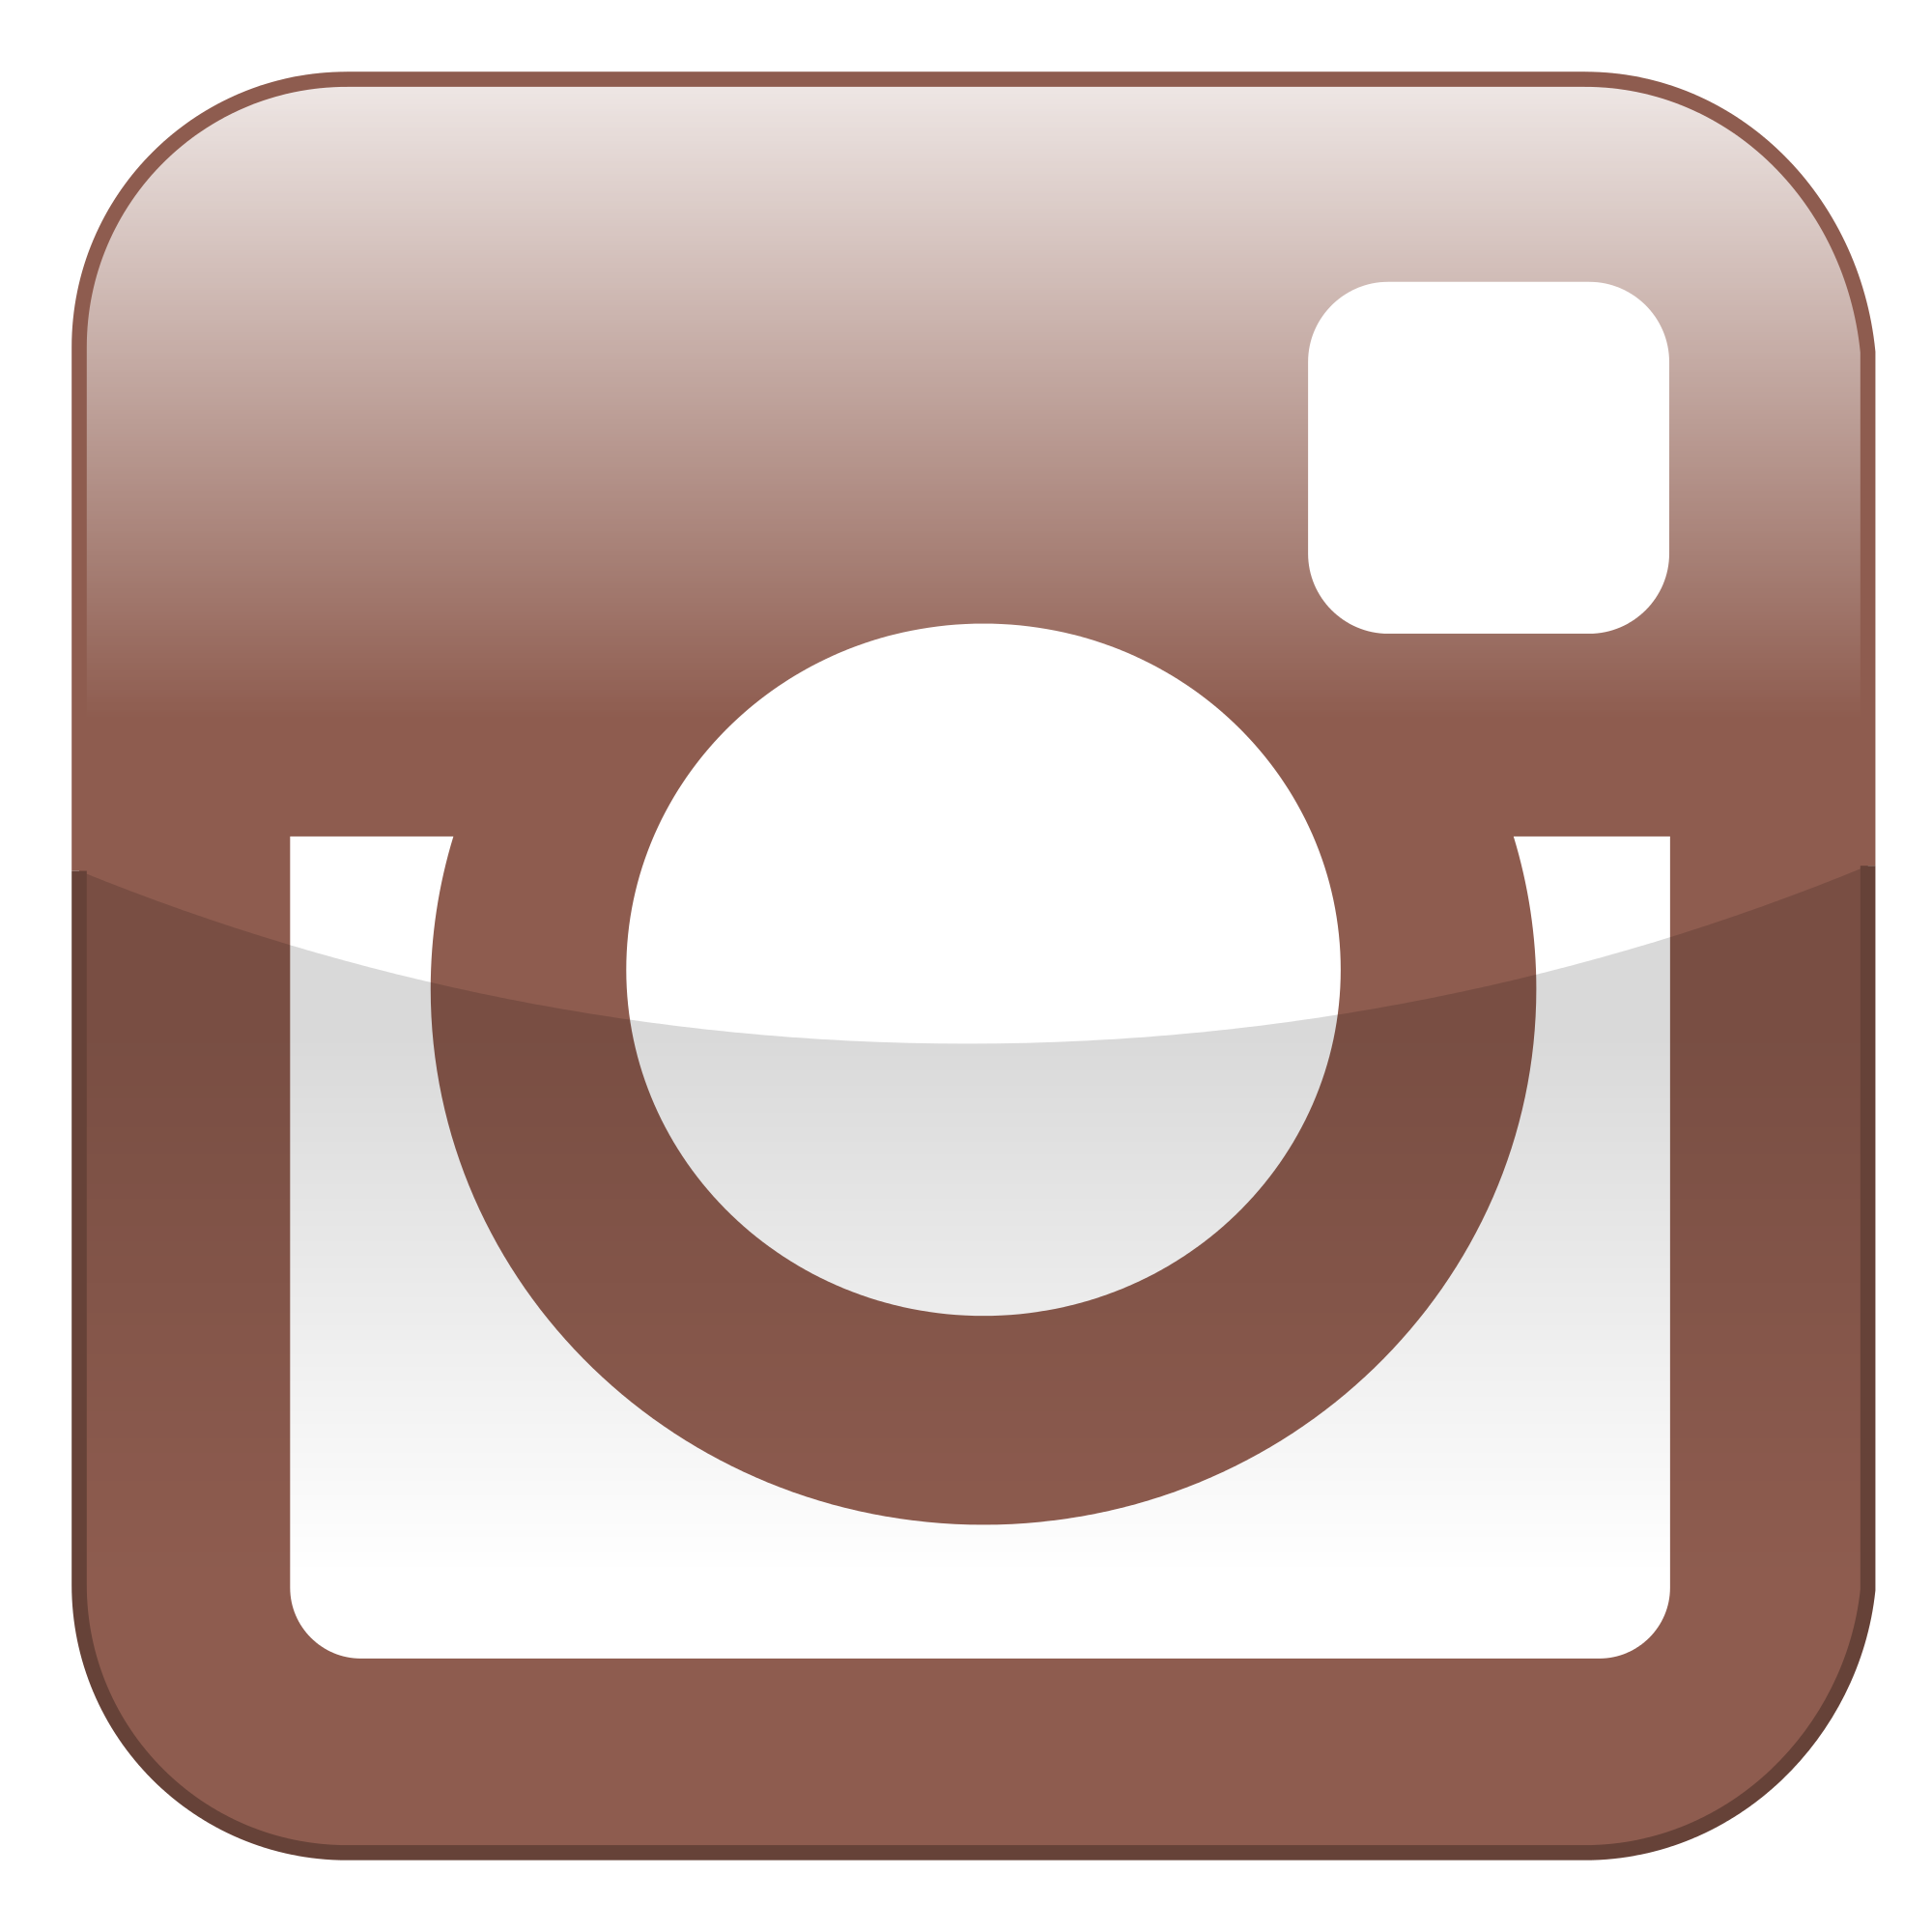 2000x2000 Instagram Icons, Free Download